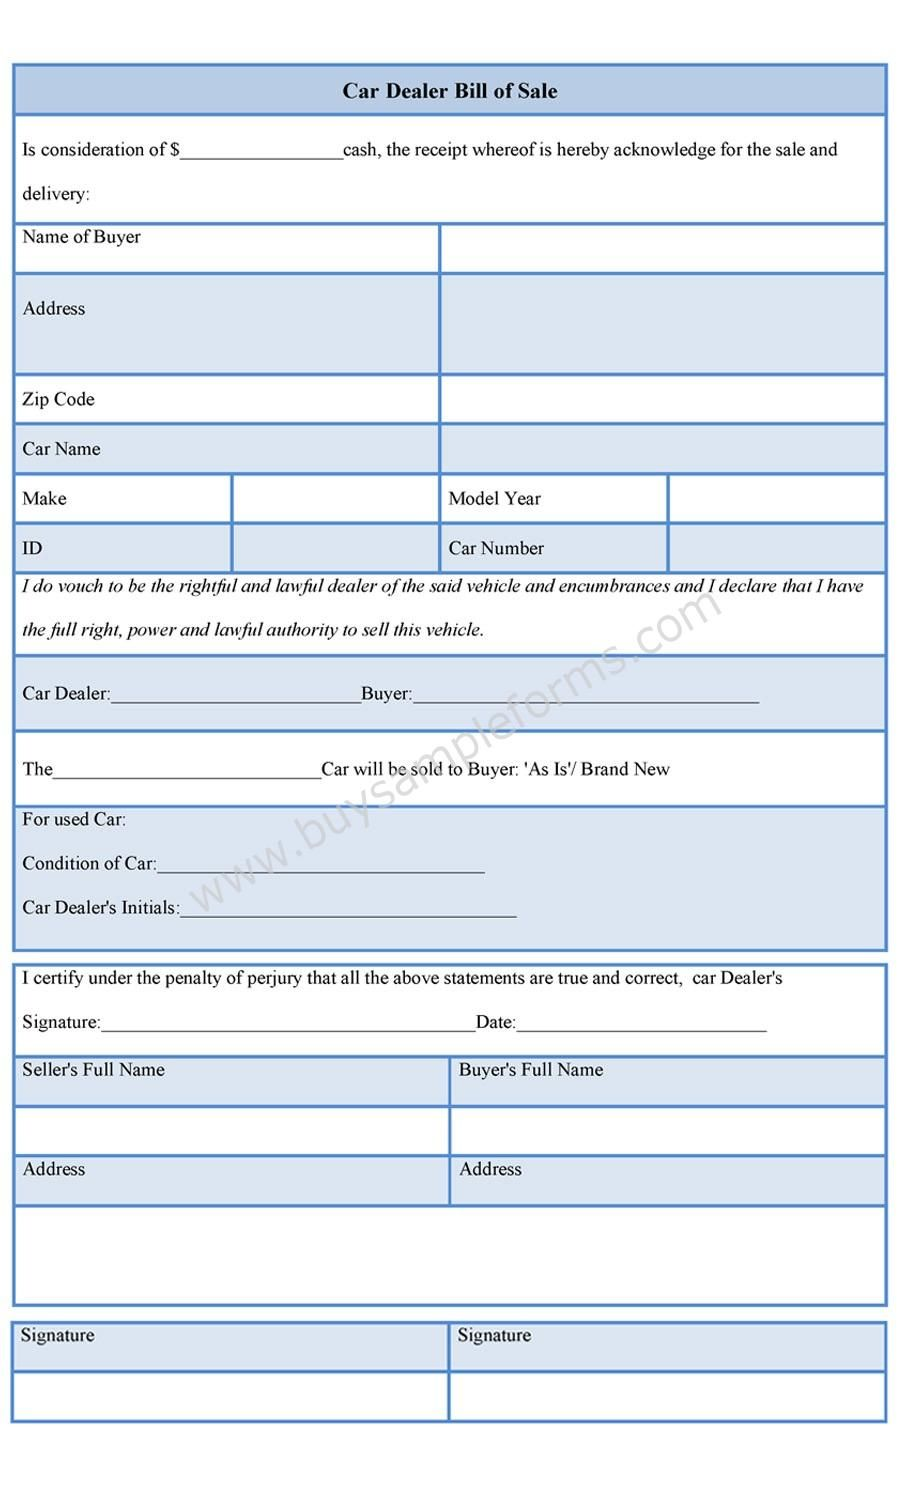 Louisiana Used Car Dealer Application